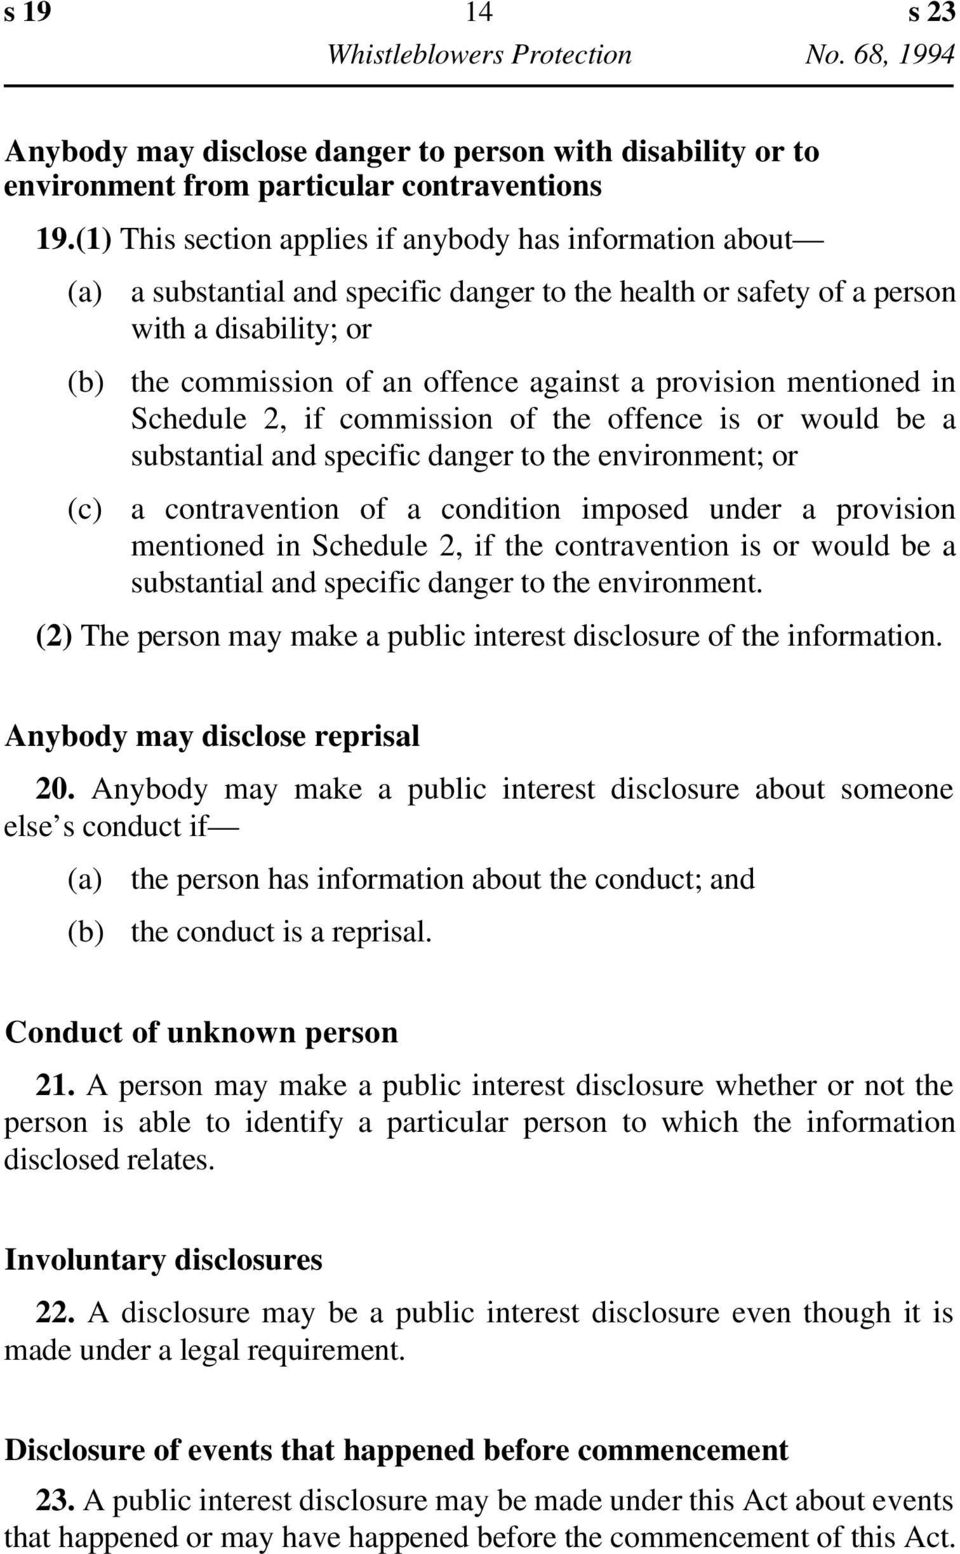 provision mentioned in Schedule 2, if commission of the offence is or would be a substantial and specific danger to the environment; or a contravention of a condition imposed under a provision